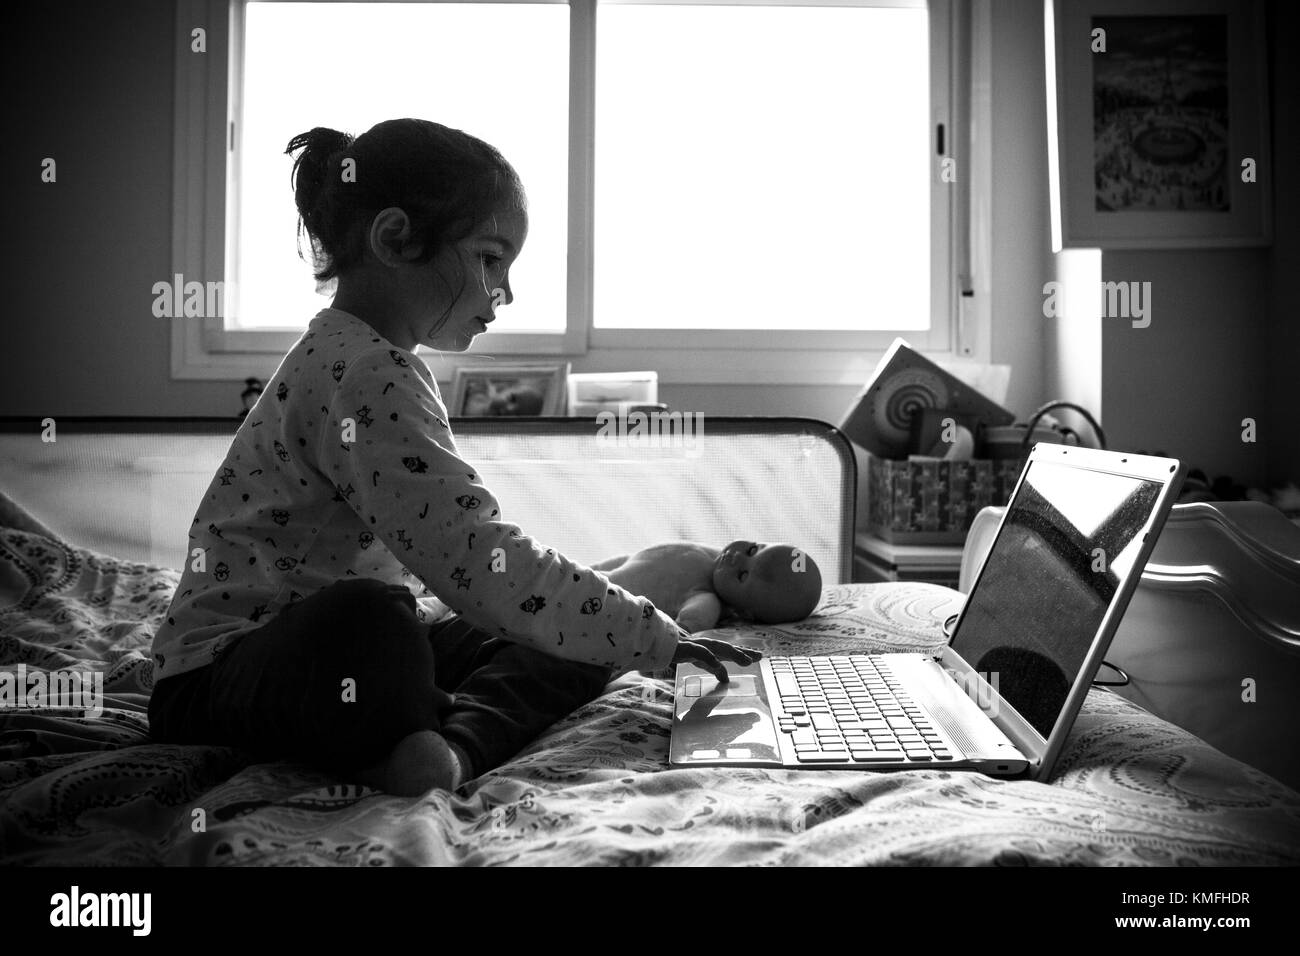 Little girl sitting in bed and playing online games in his bedroom. Black and white shot - Stock Image